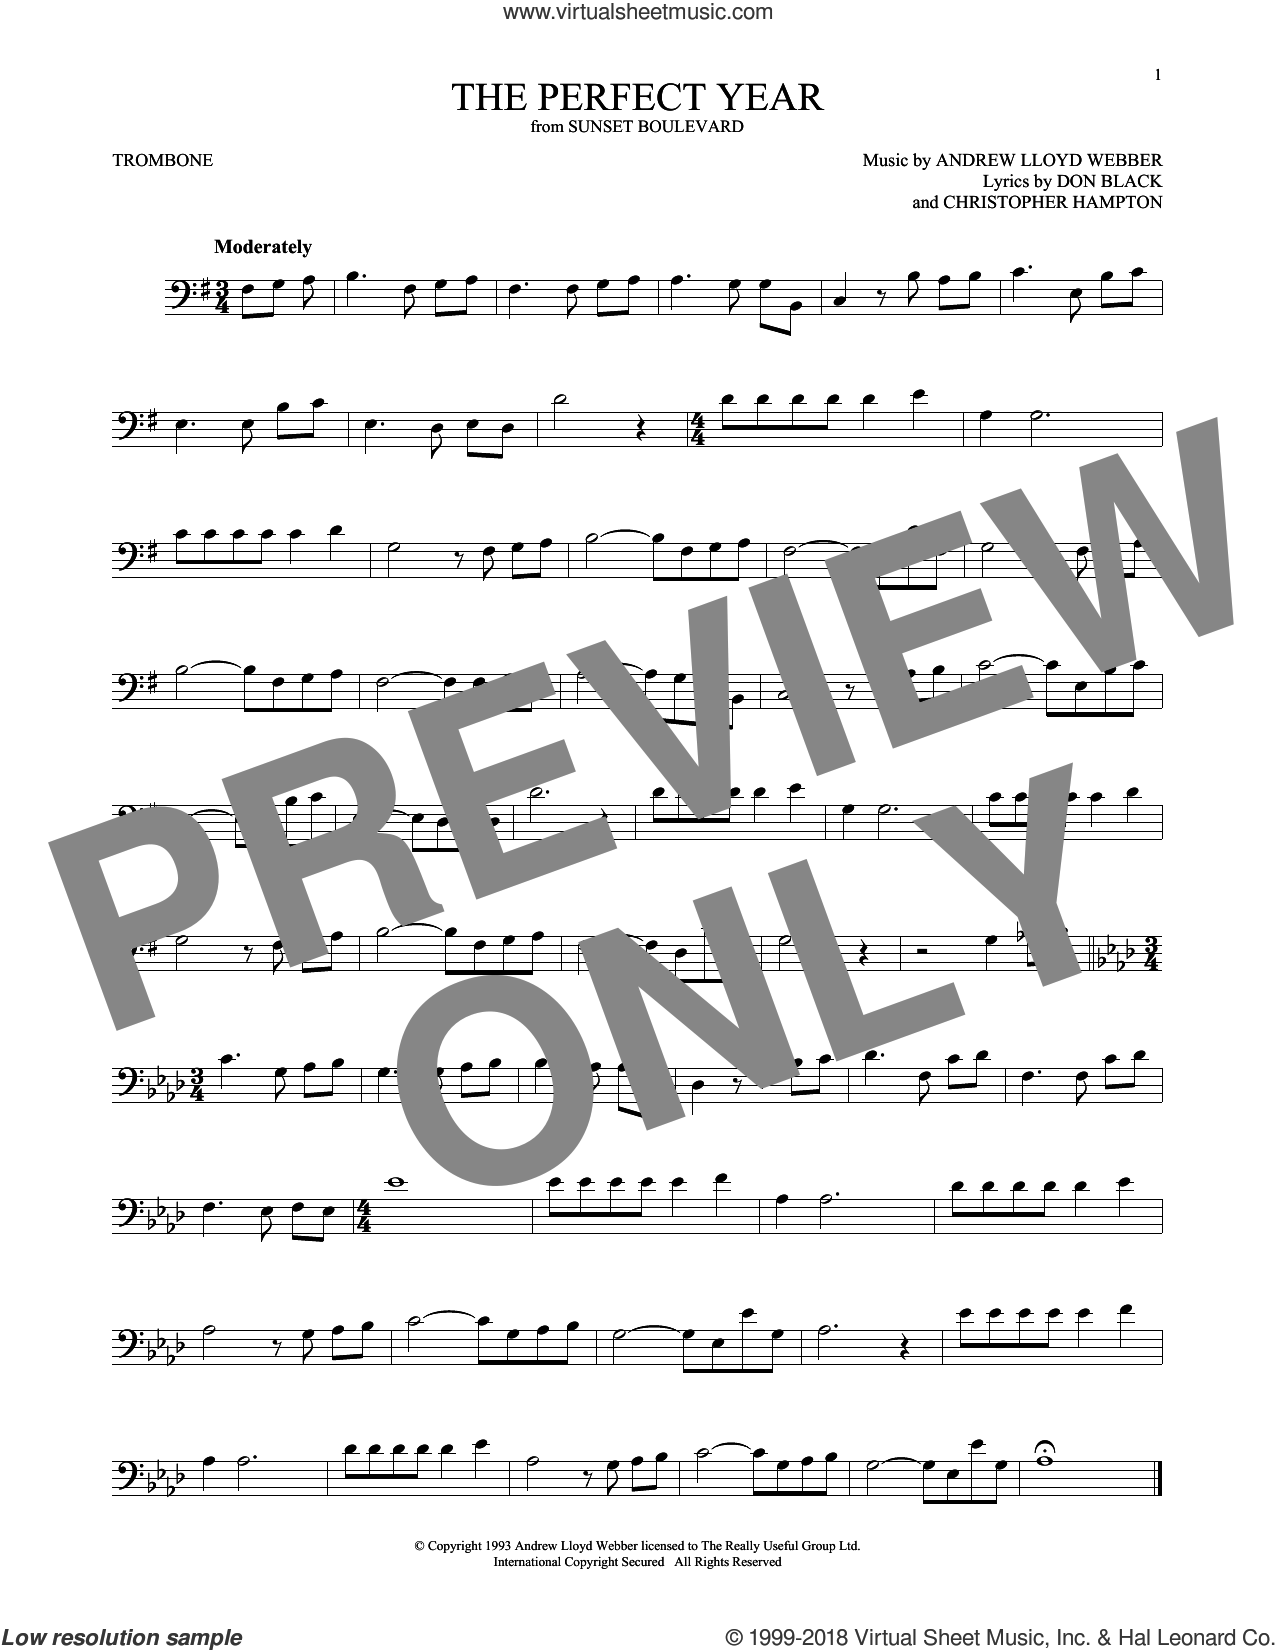 The Perfect Year (from Sunset Boulevard) sheet music for trombone solo by Andrew Lloyd Webber, Christopher Hampton and Don Black, intermediate skill level